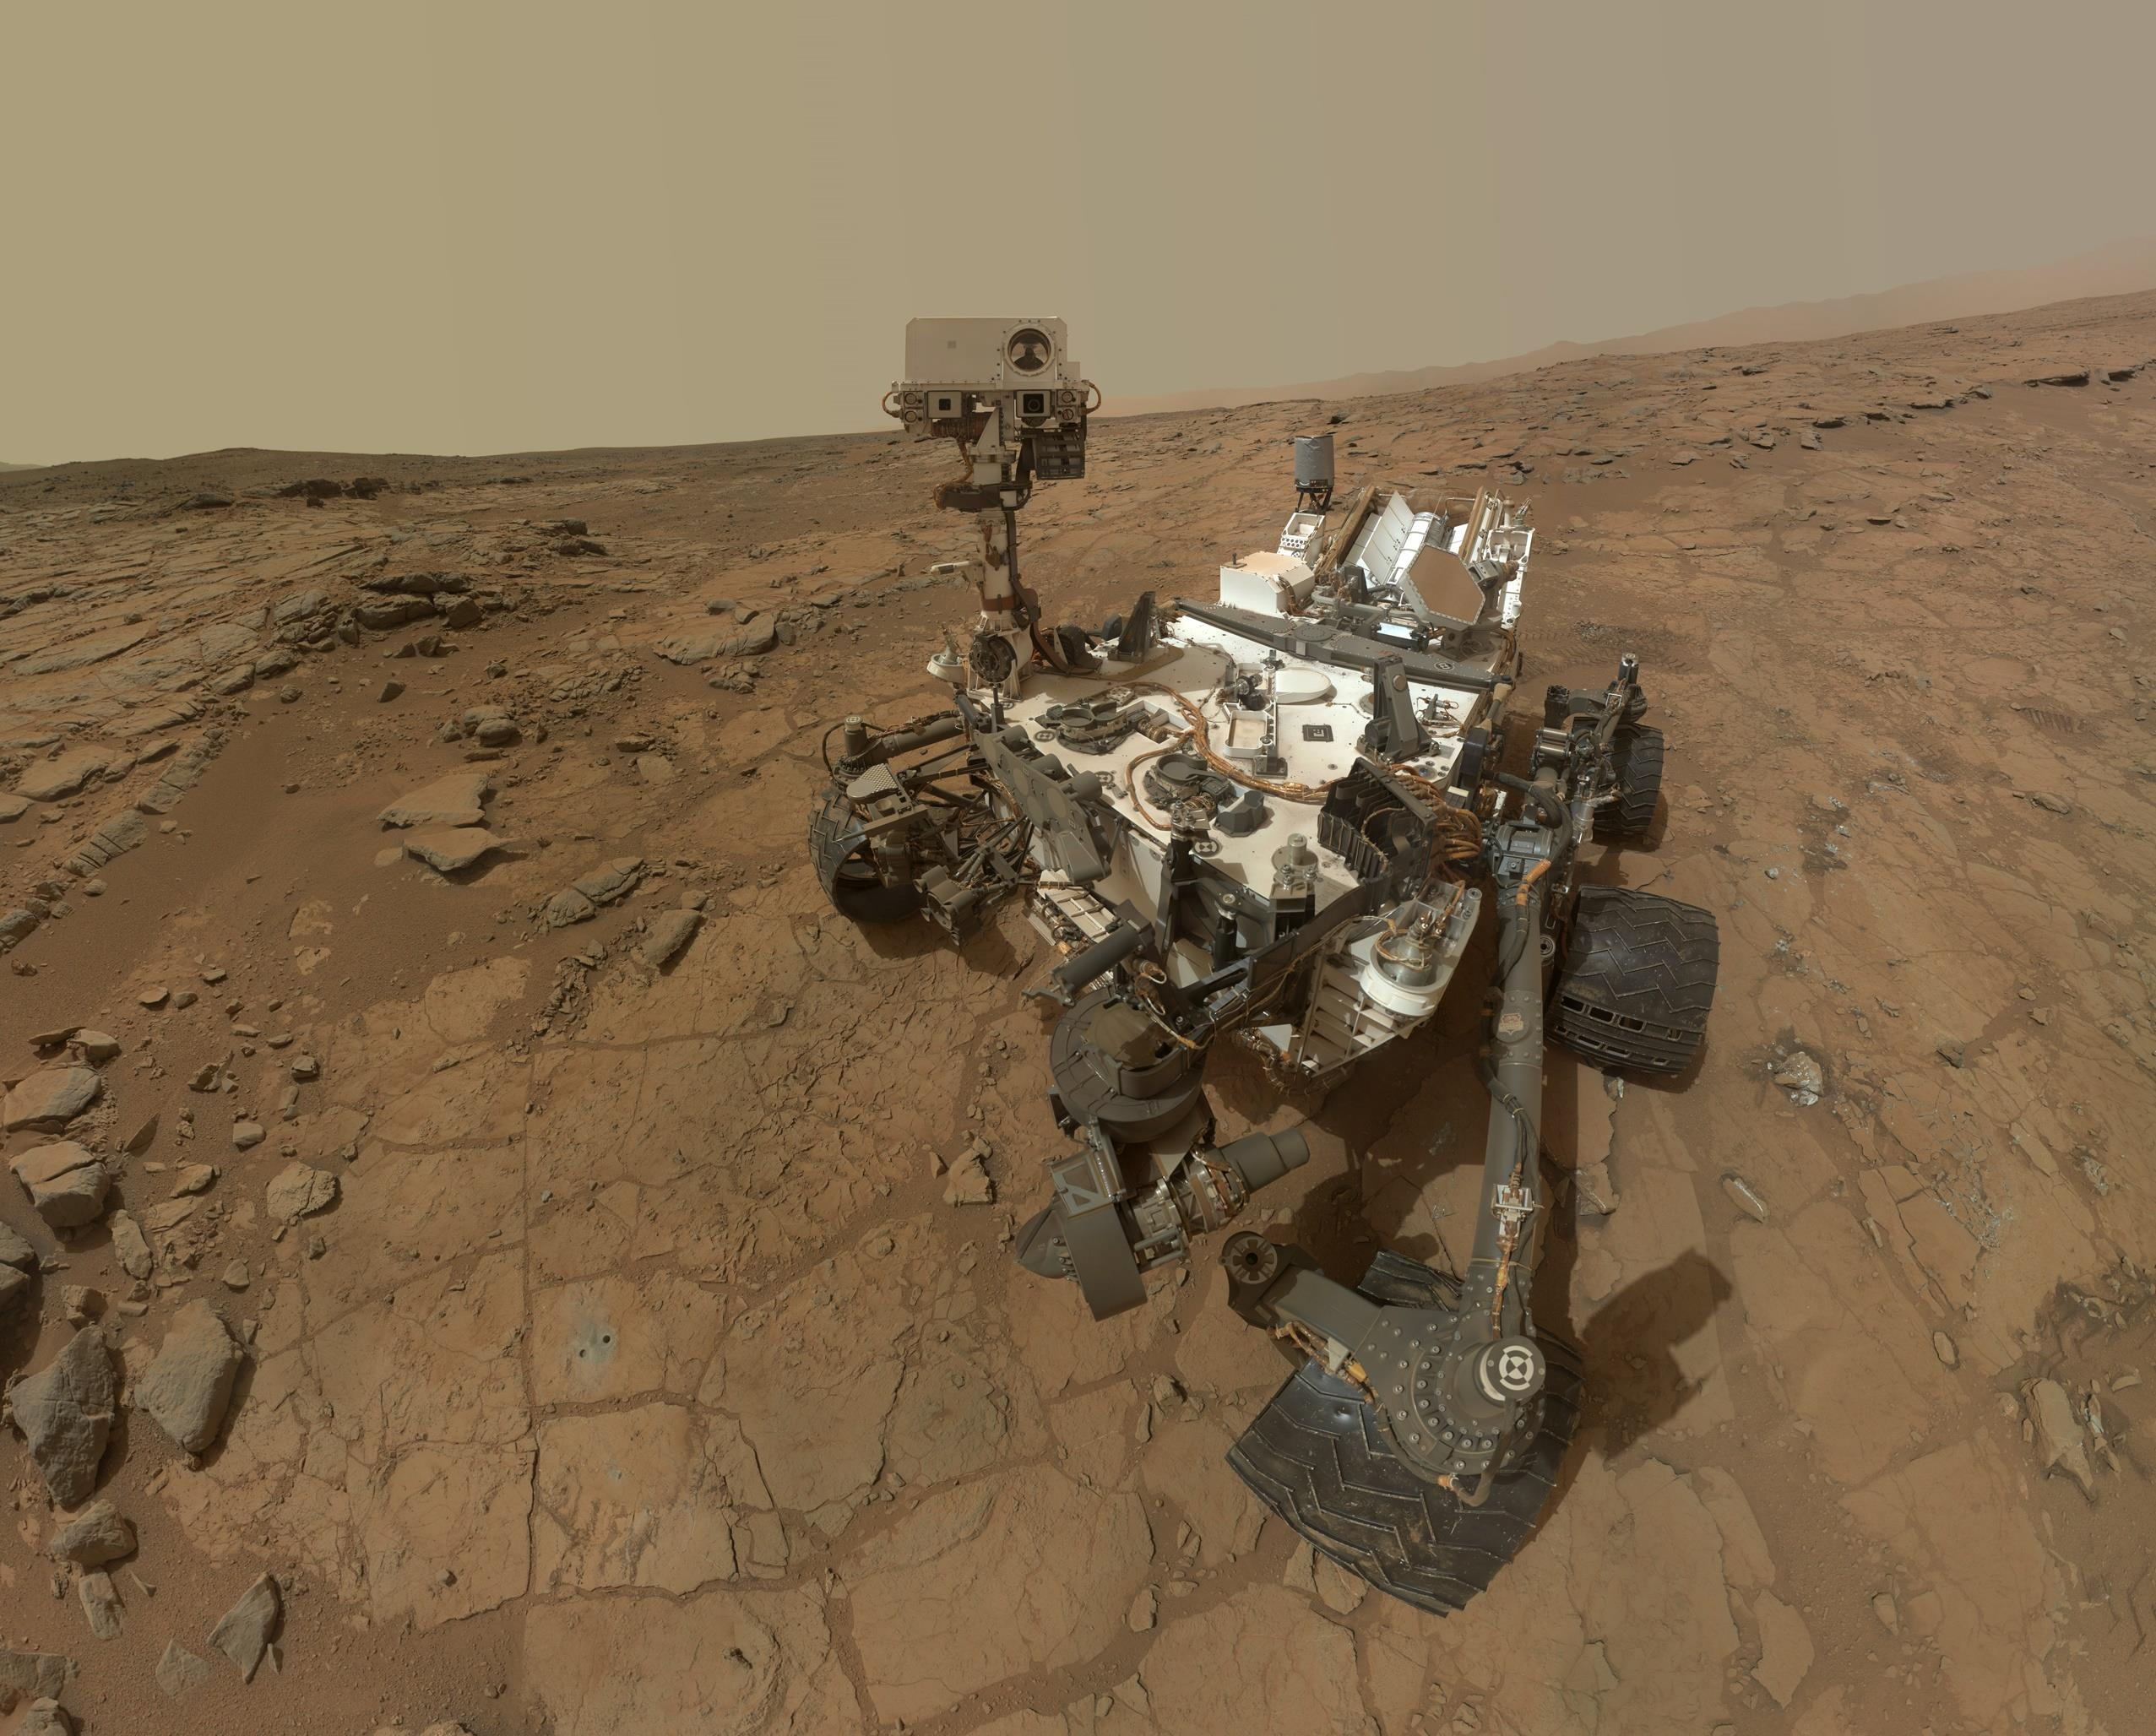 curiostiy rover spends a martian year on mars - Headstuff.org